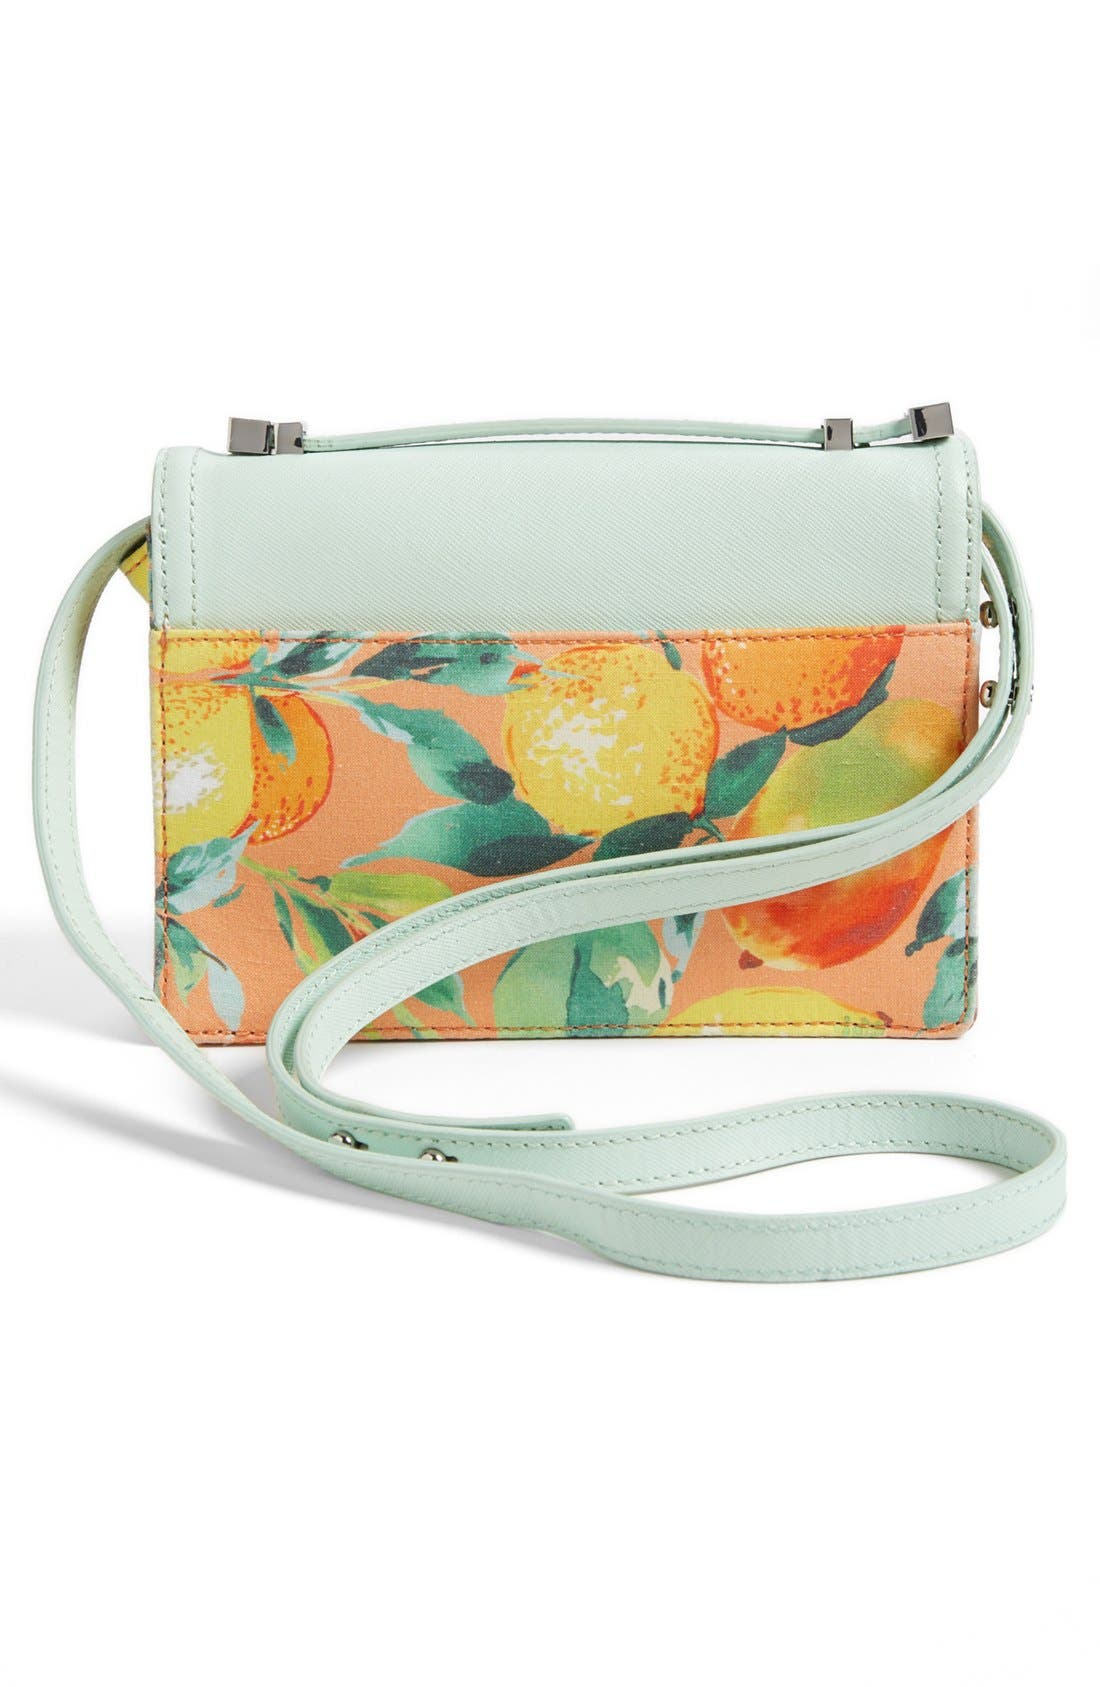 Alternate Image 3  - Loeffler Randall 'Rider - Mini' Leather Crossbody Bag